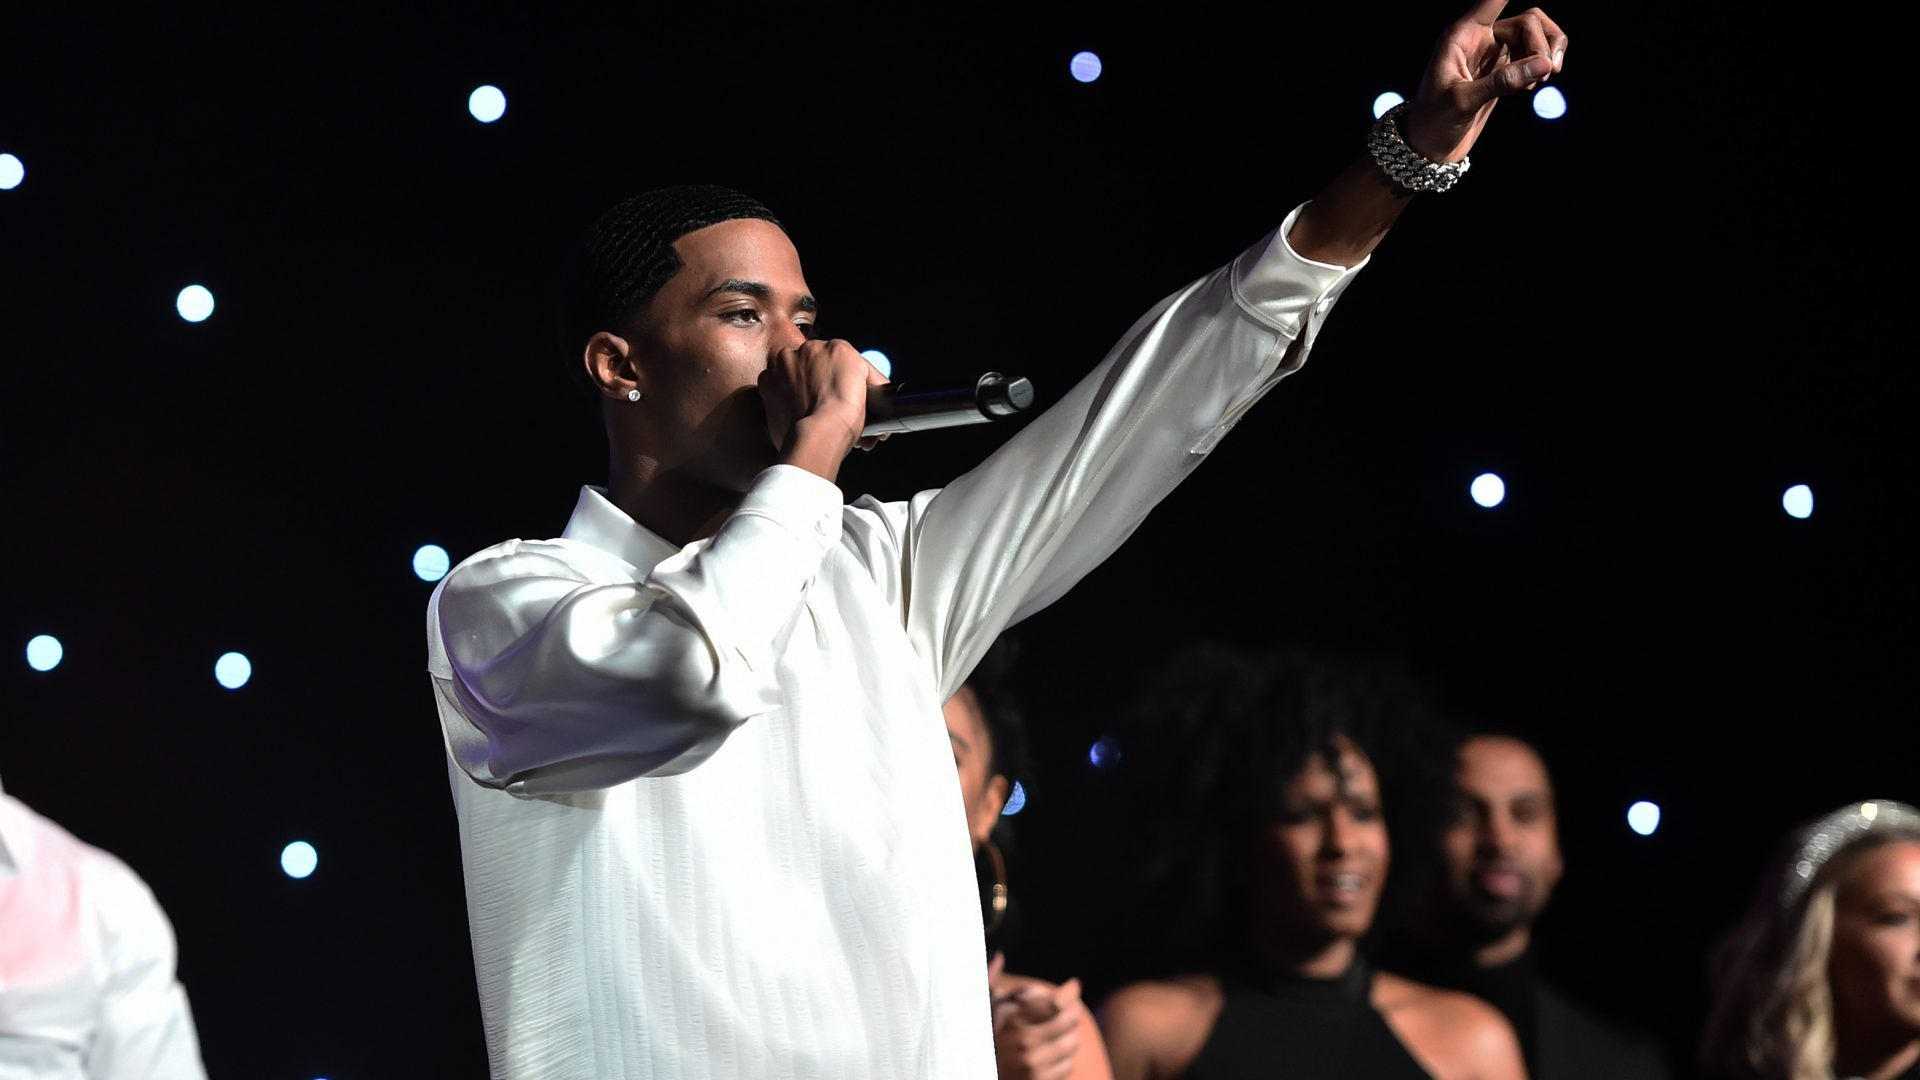 Christian Combs Survives Car Crash With Minor Injuries